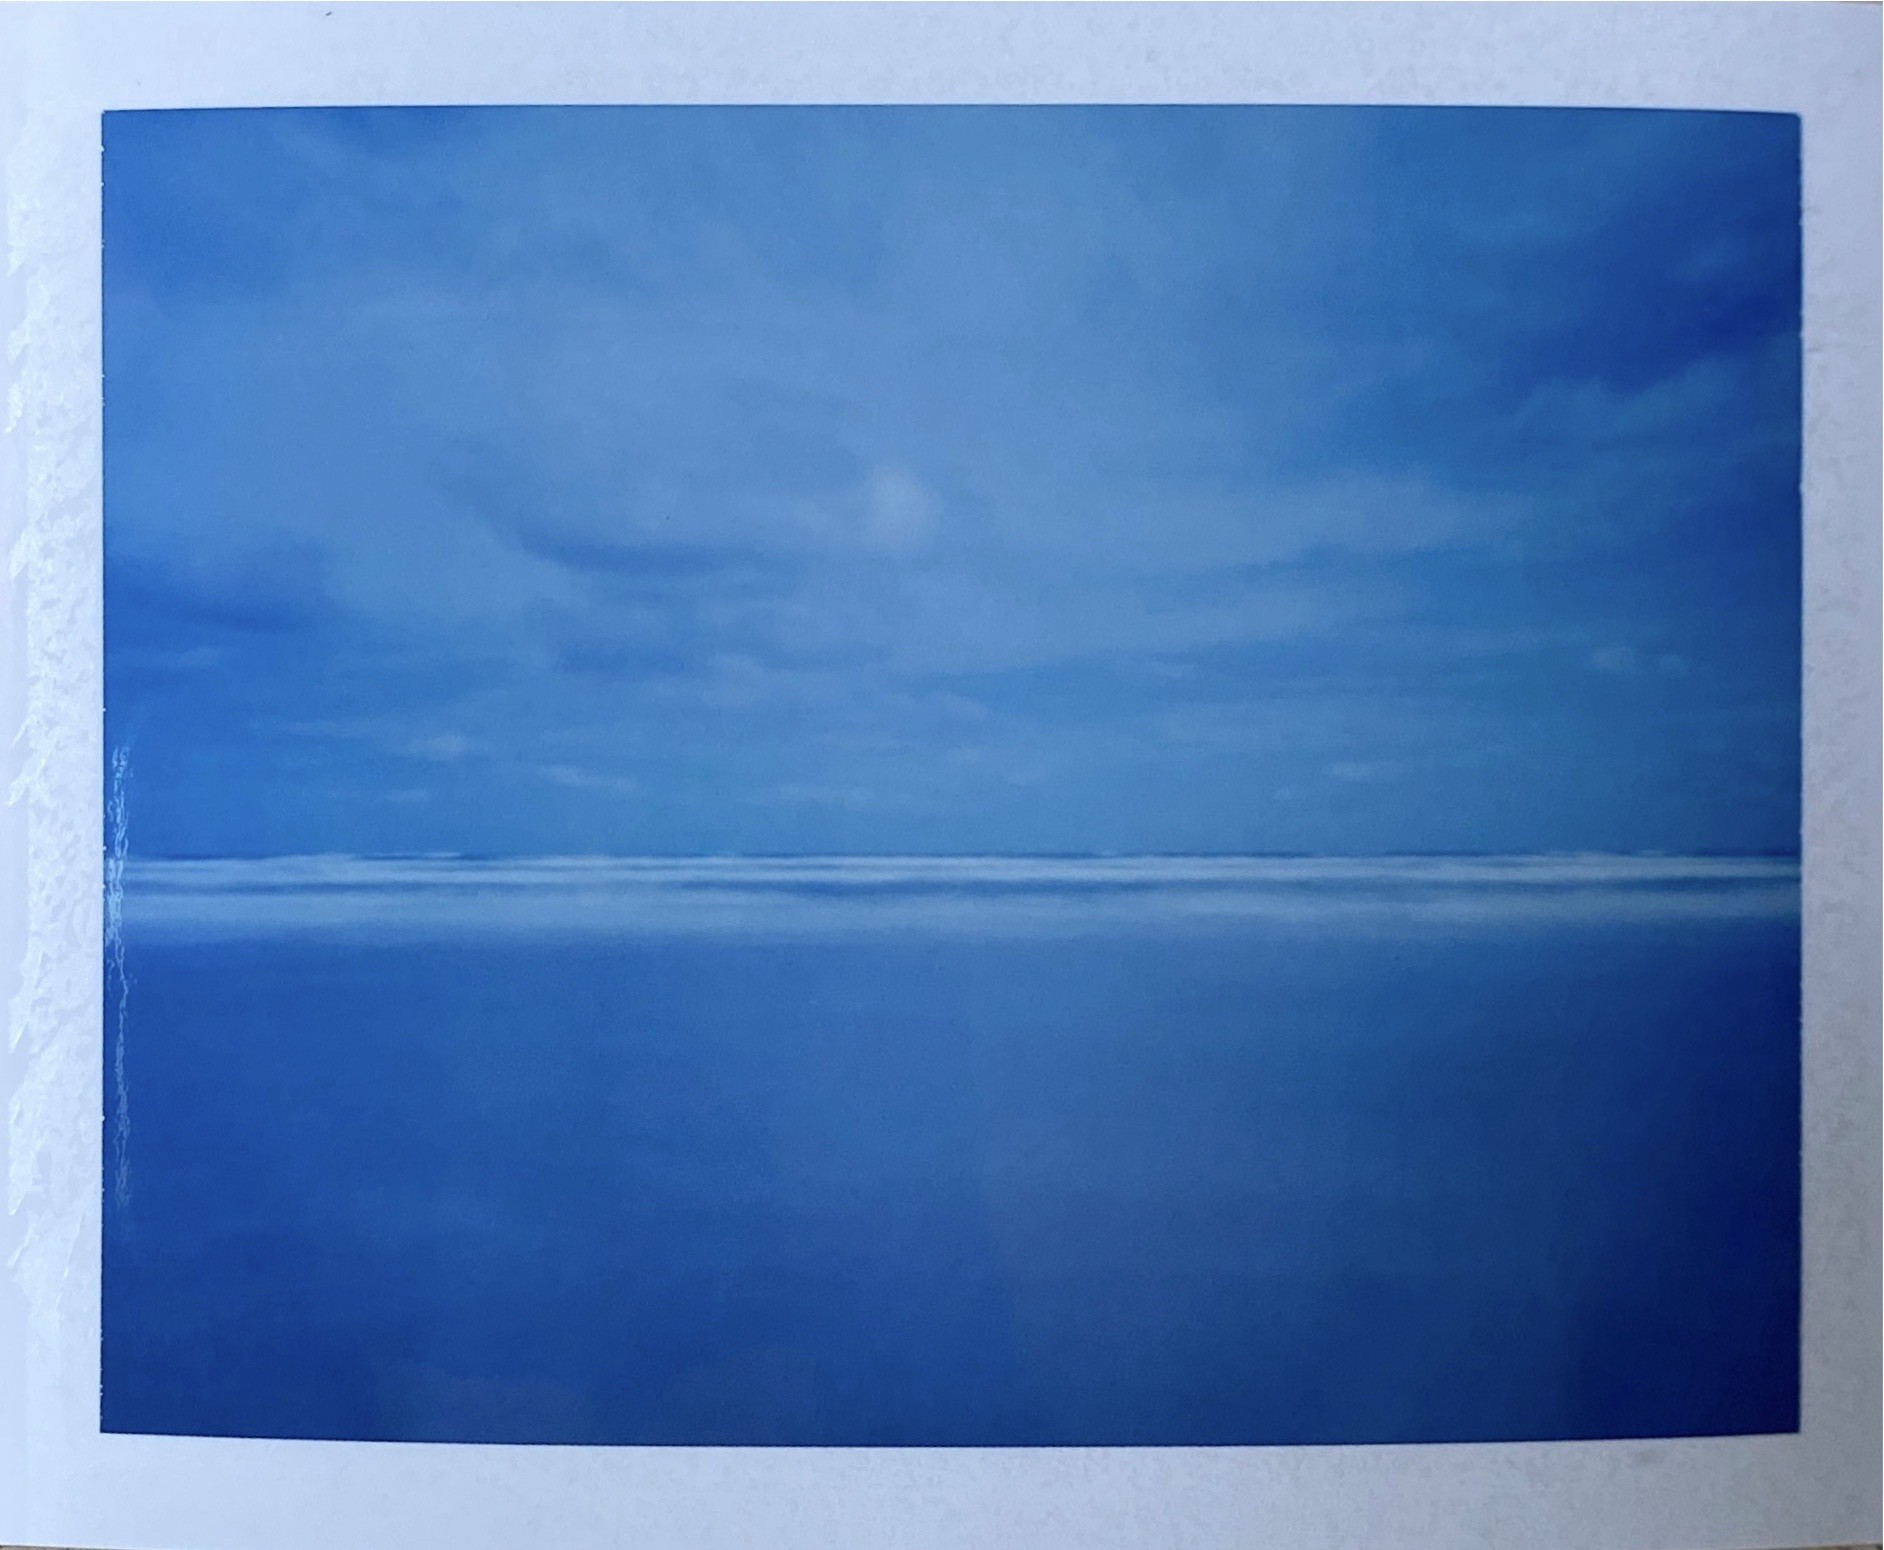 Mostly blue photograph of the ocean and sky, a calm monochromatic scene